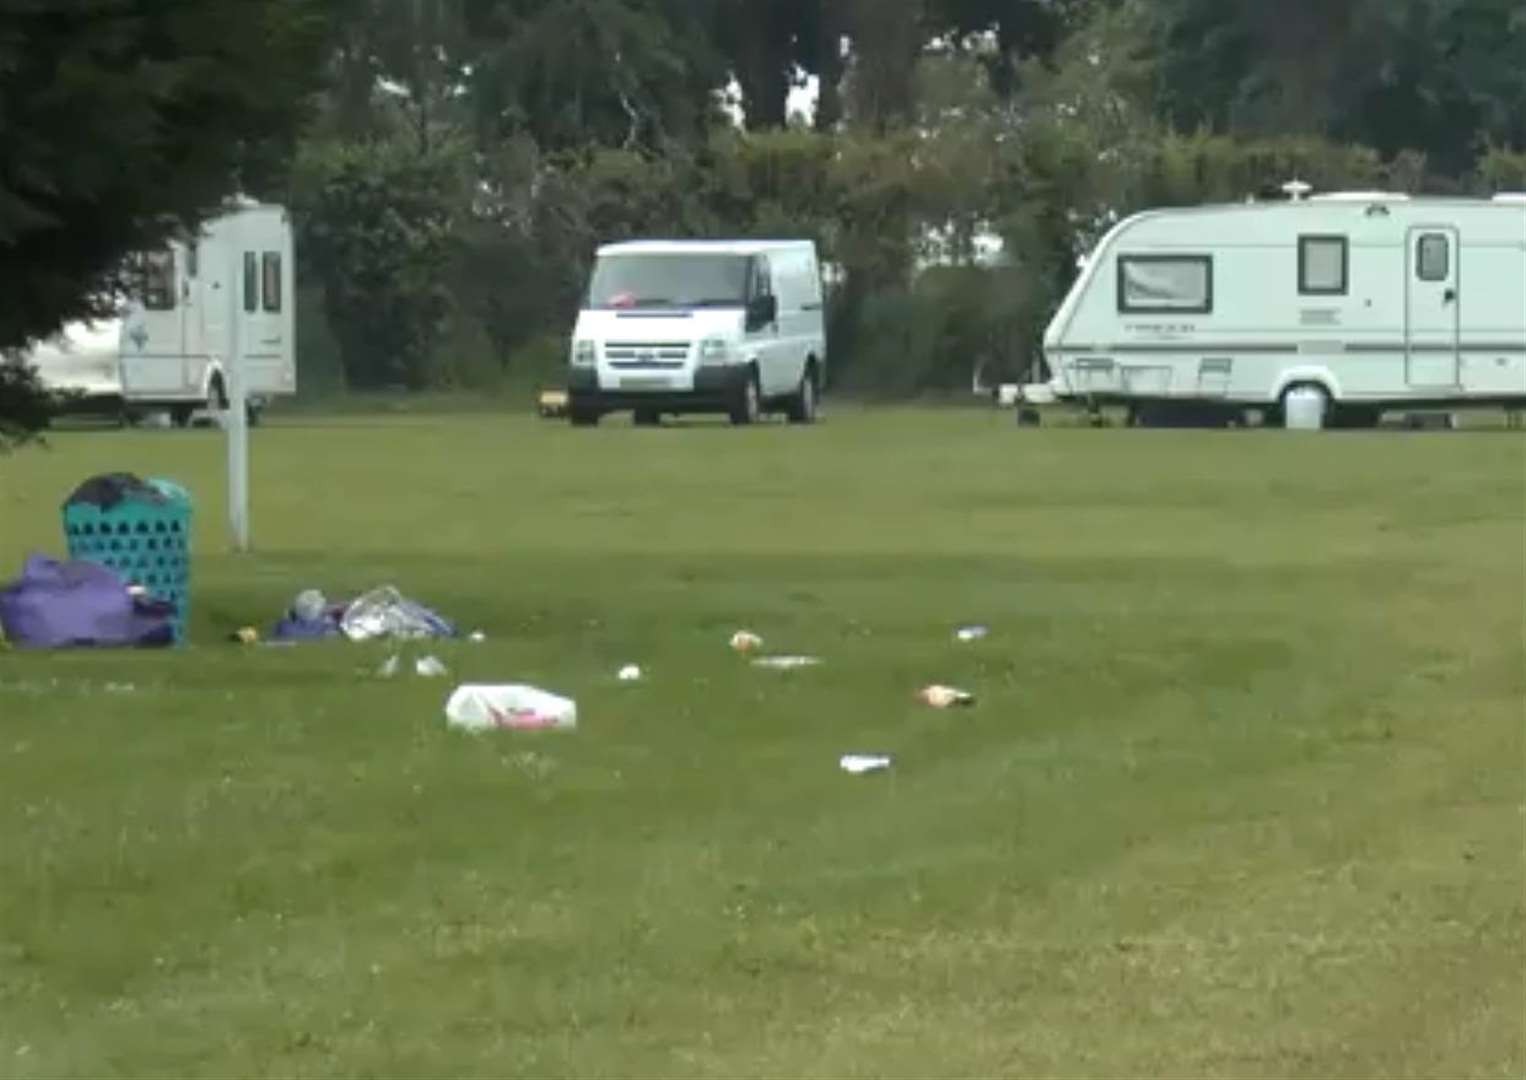 Have your say on illegal traveller camps